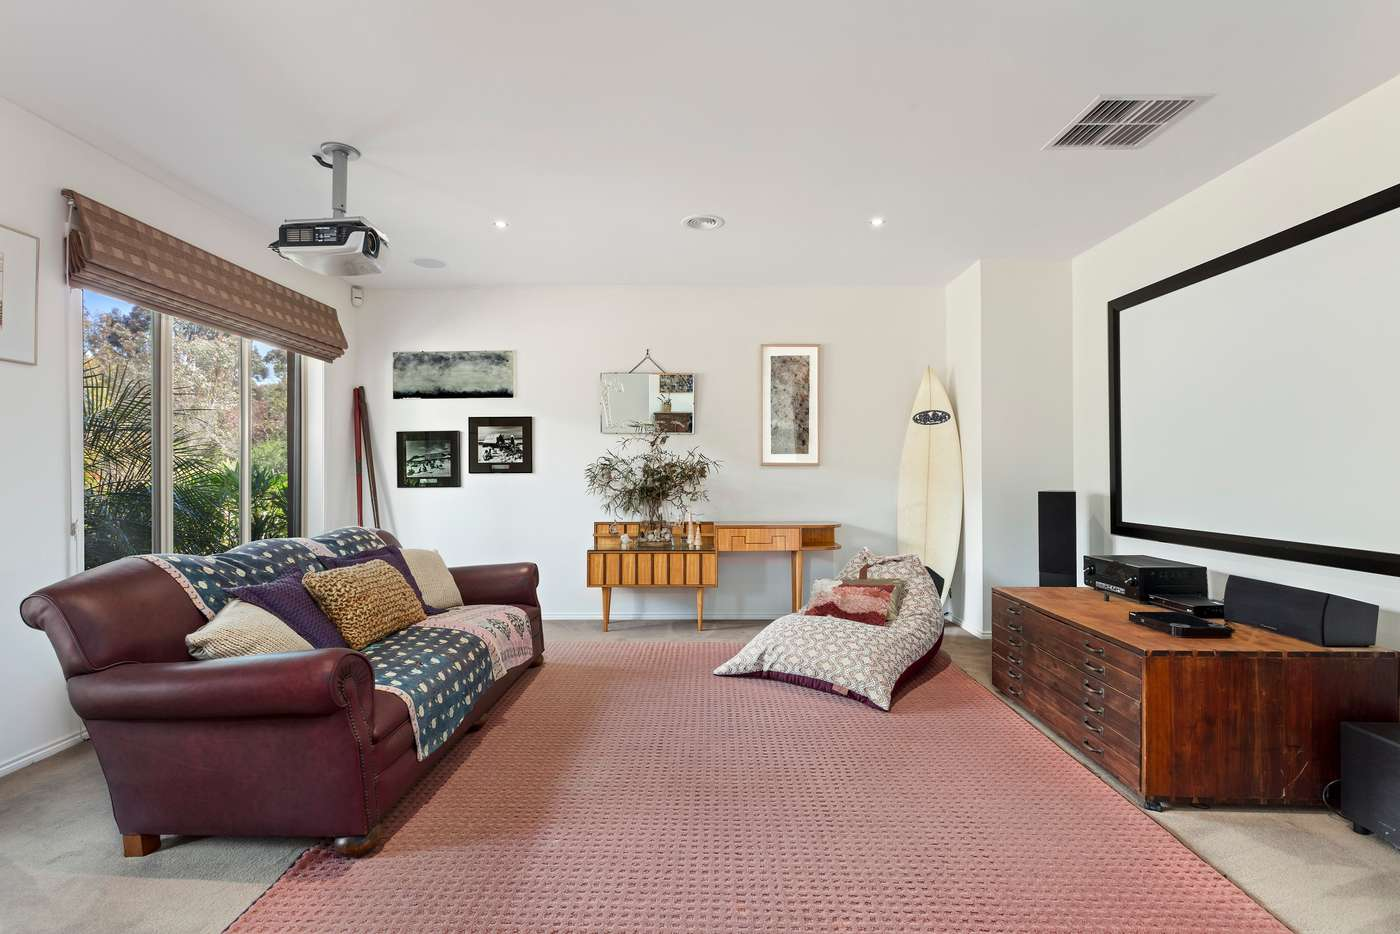 Seventh view of Homely house listing, 3 Enfield Drive, Torquay VIC 3228